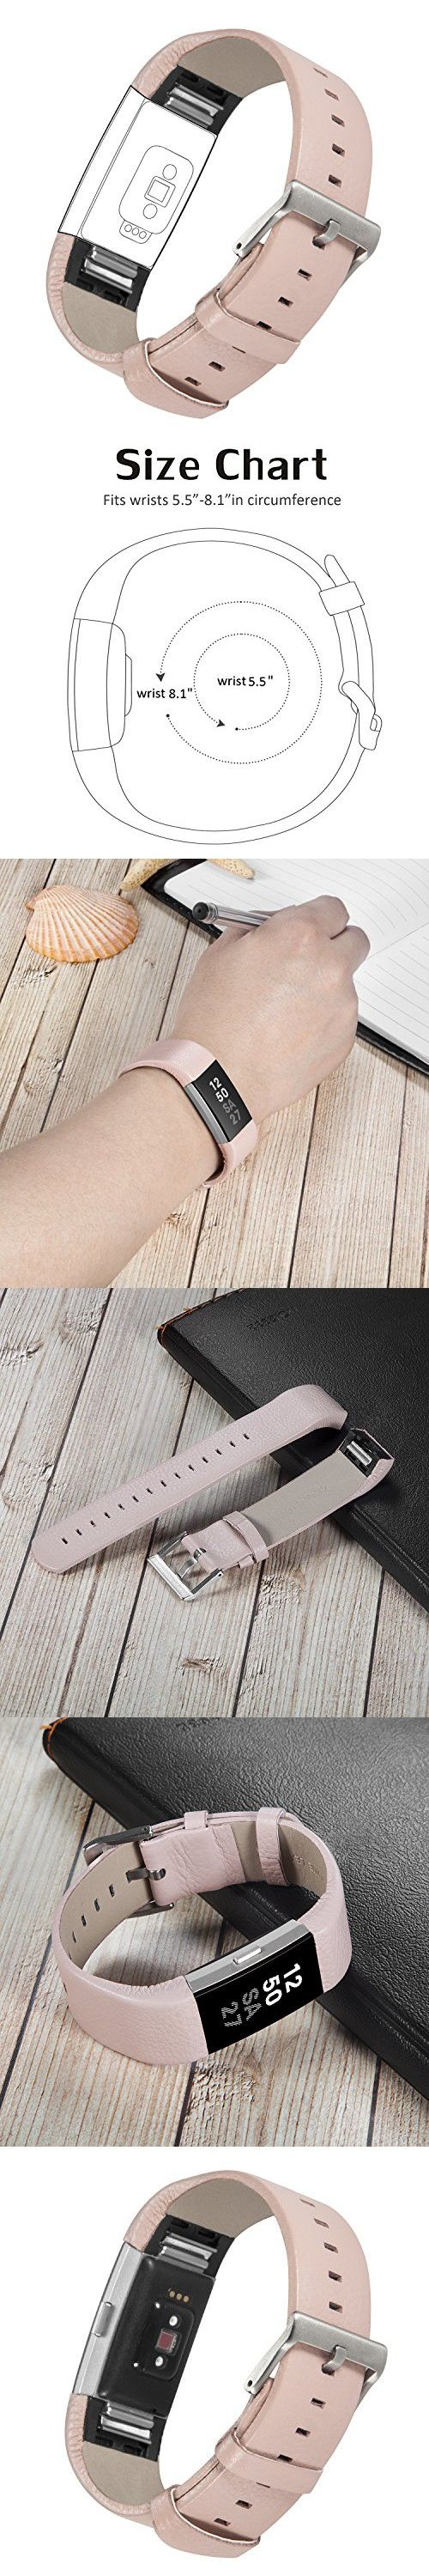 For Fitbit Charge 2, TreasureMax Leather Replacement Band for Fitbit Charge 2 Band / Charge 2 / Fitbit 2 / Charge 2 Fitbit / Fitbit Charge 2 Bands (No Tracker)